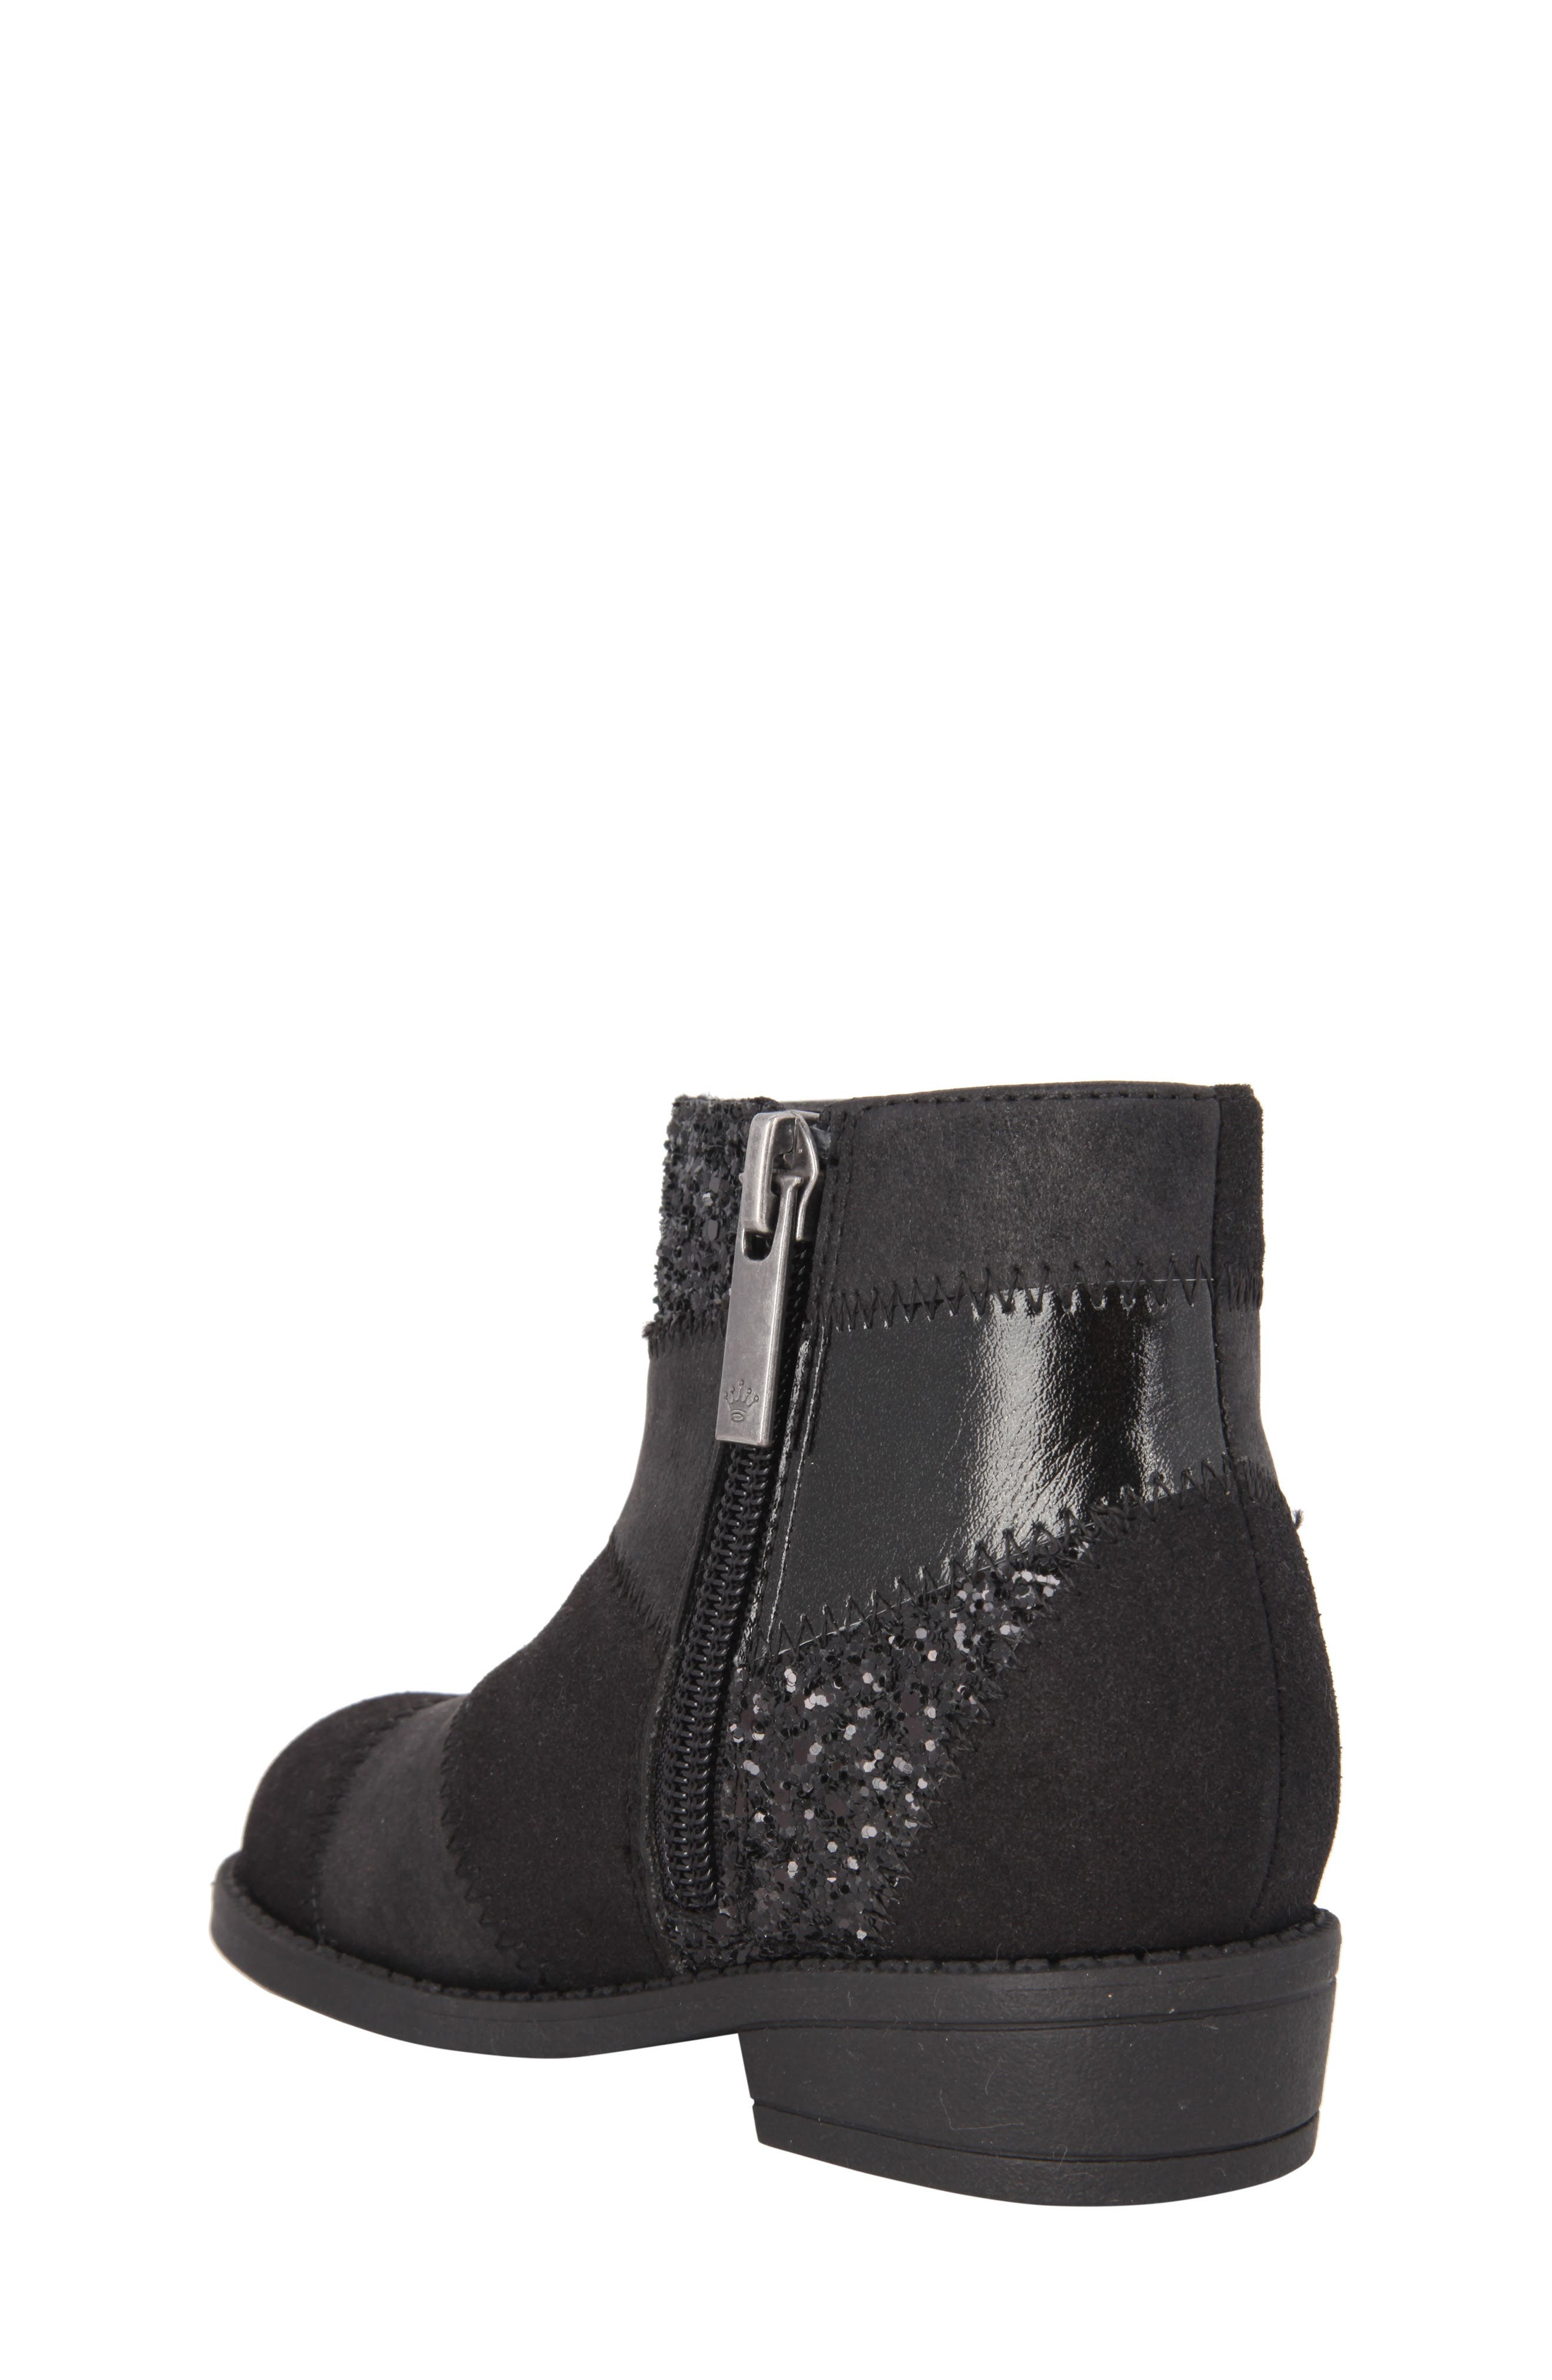 Ines Glittery Patchwork Bootie,                             Alternate thumbnail 2, color,                             Black Metallic/ Black Glitter